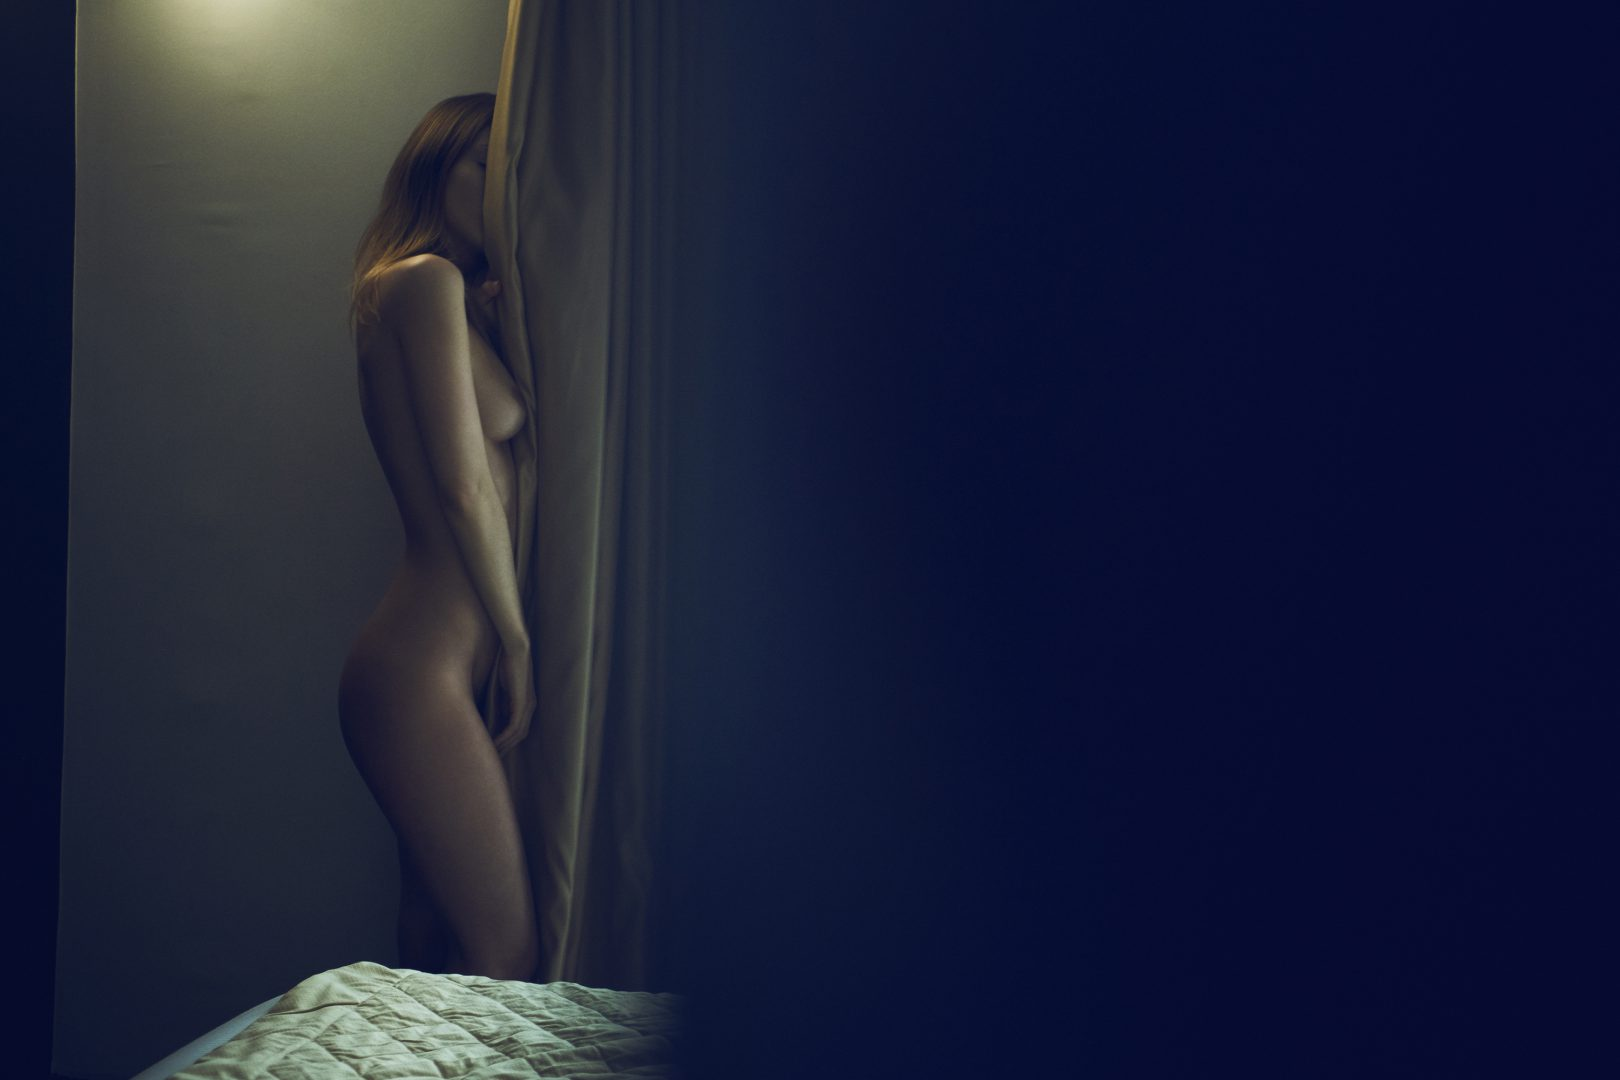 girl naked in hotel room by stefan rappo